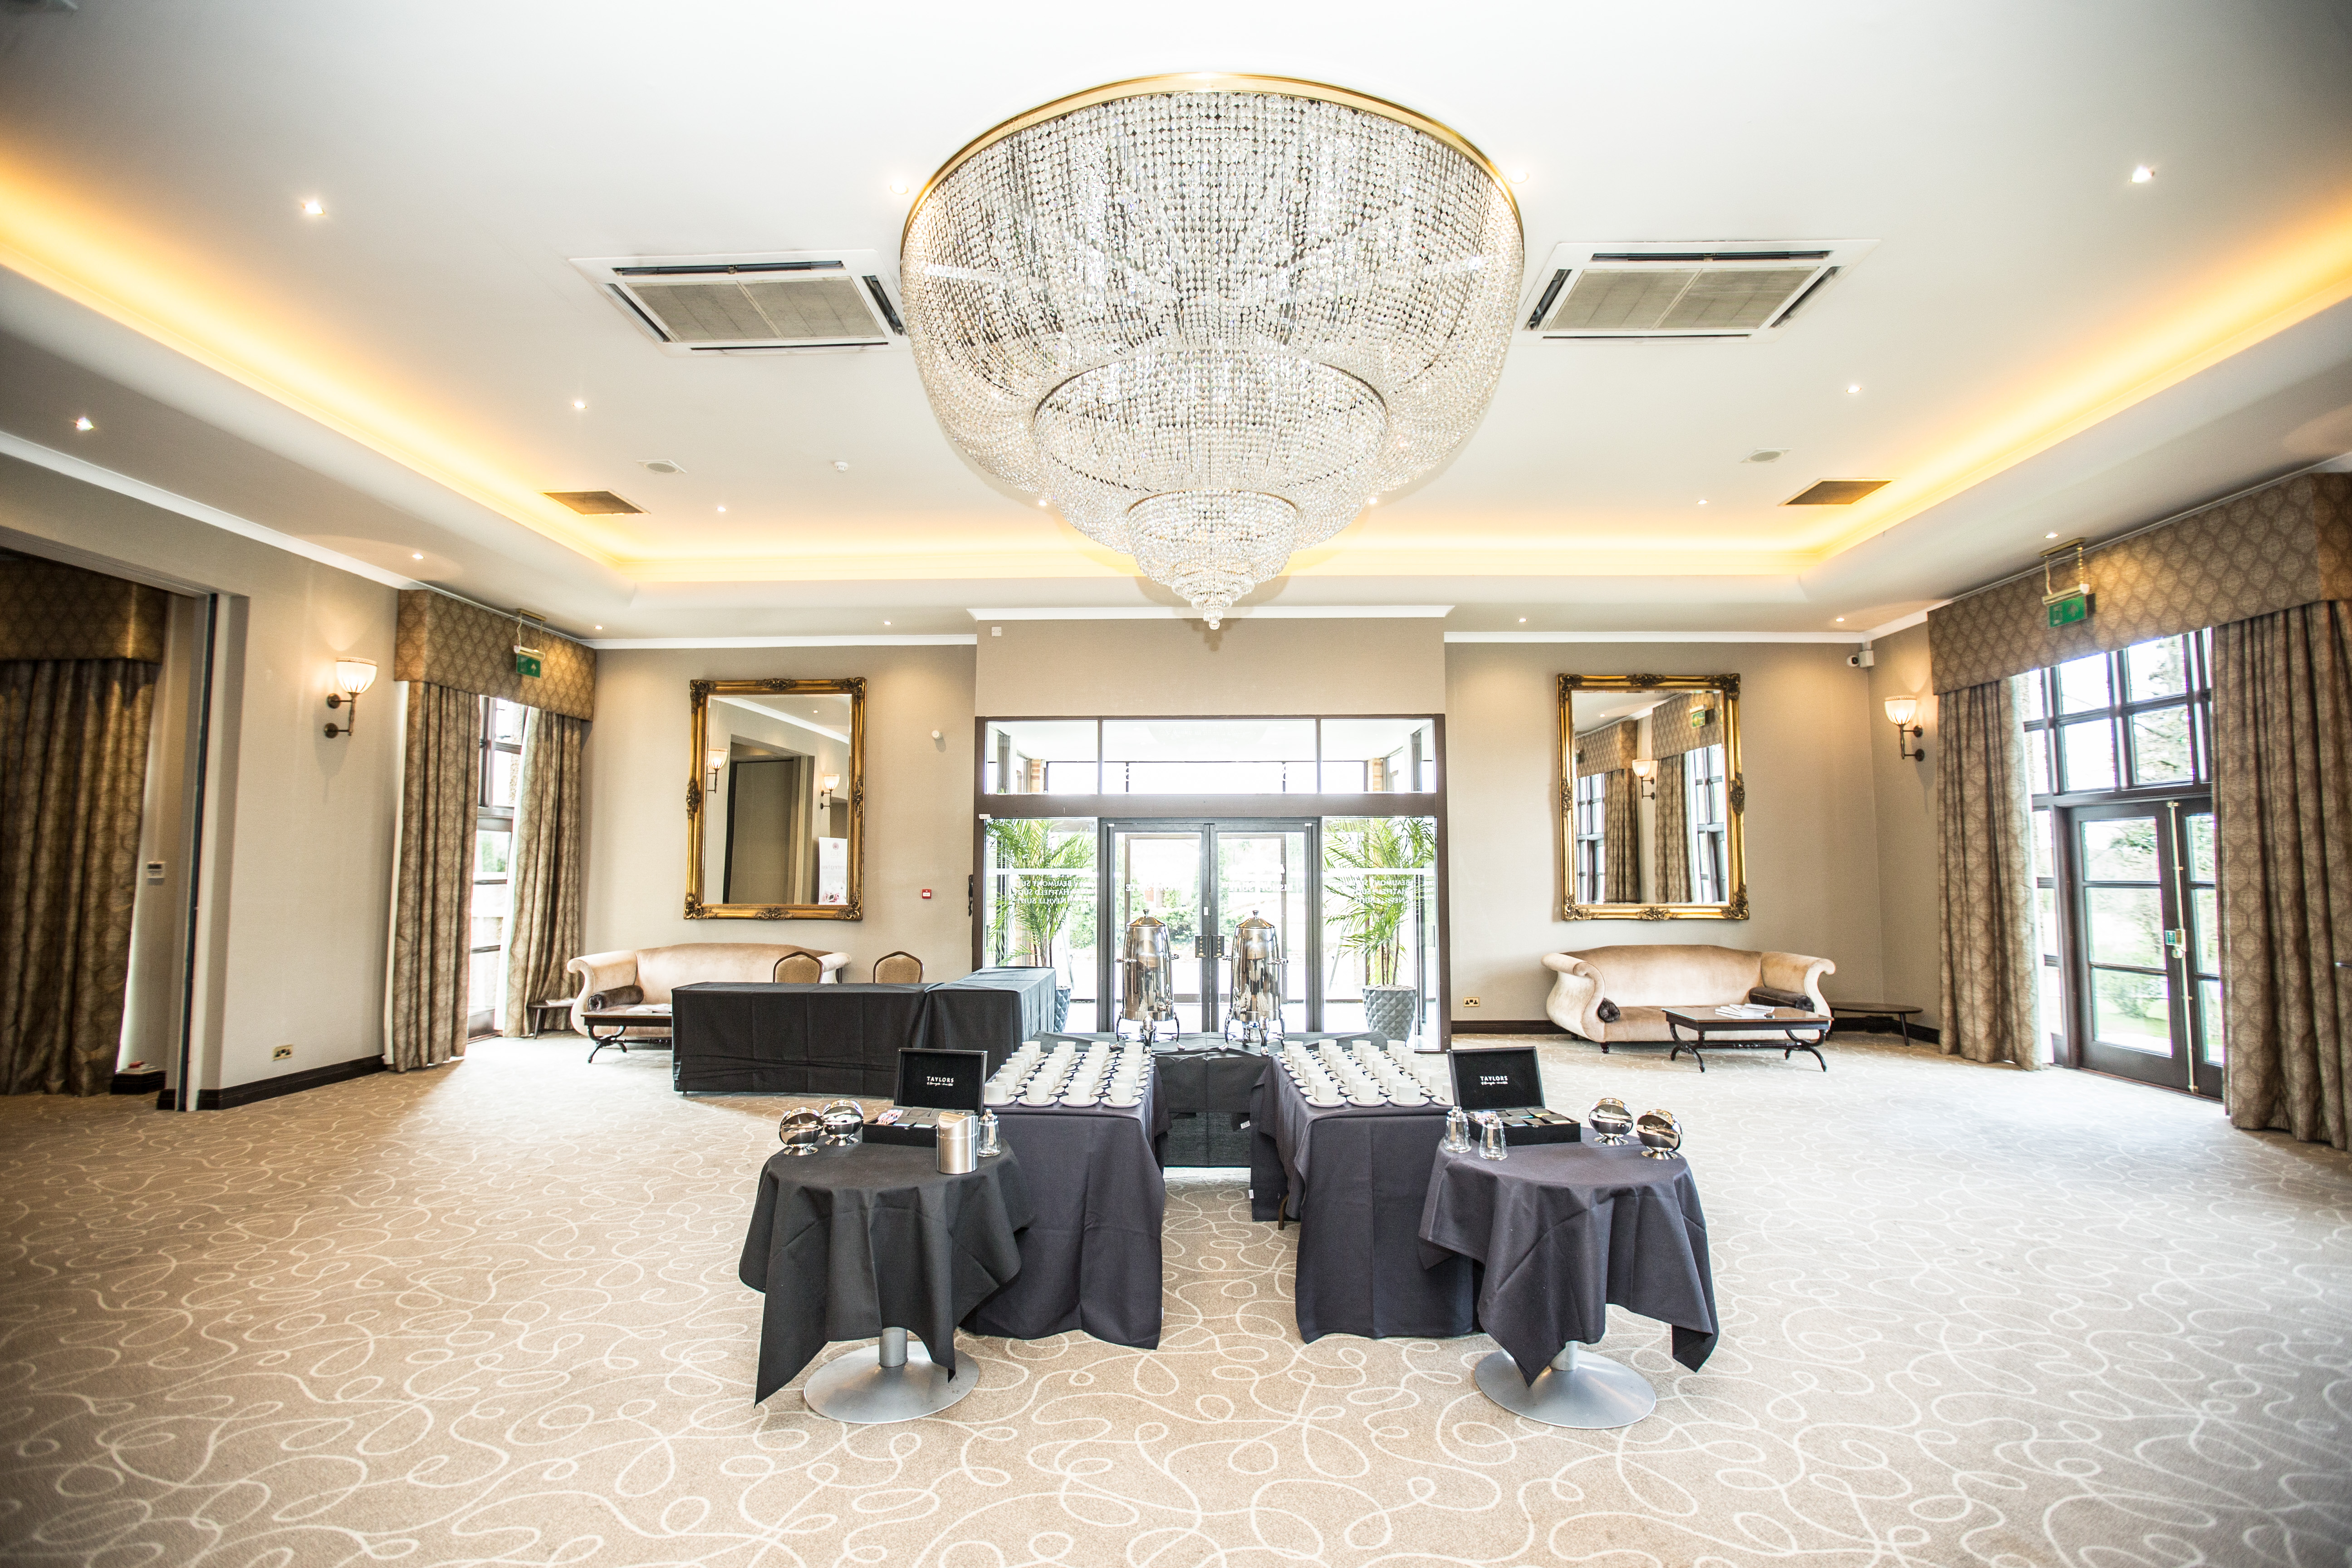 Hotel Foyer Spa : Conference venue details ramside hall hotel golf and spa